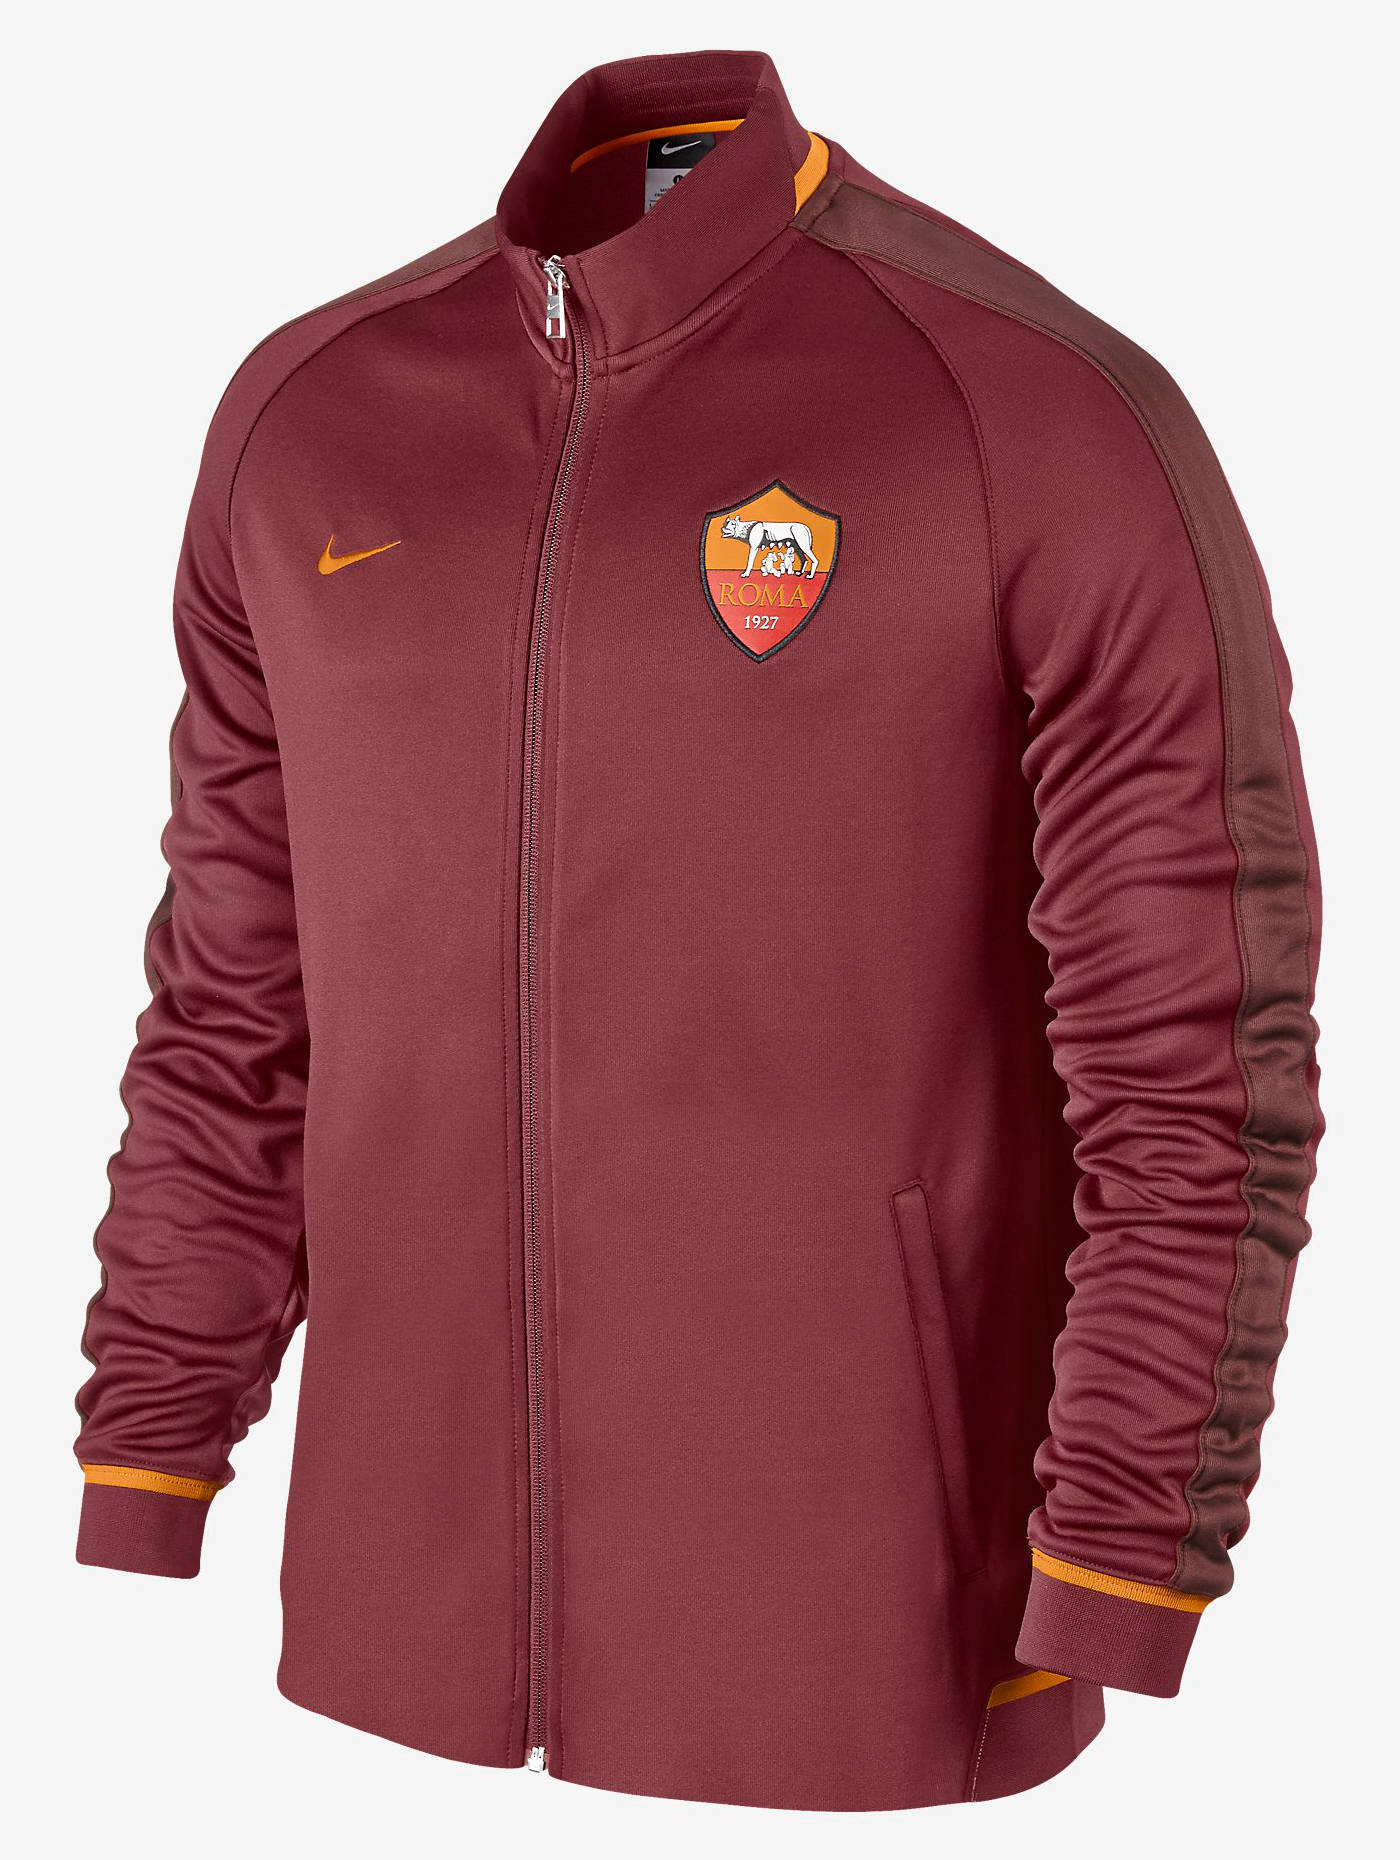 n98 authentic as roma nike training jacke jacket 2015 16 rot herren ebay. Black Bedroom Furniture Sets. Home Design Ideas